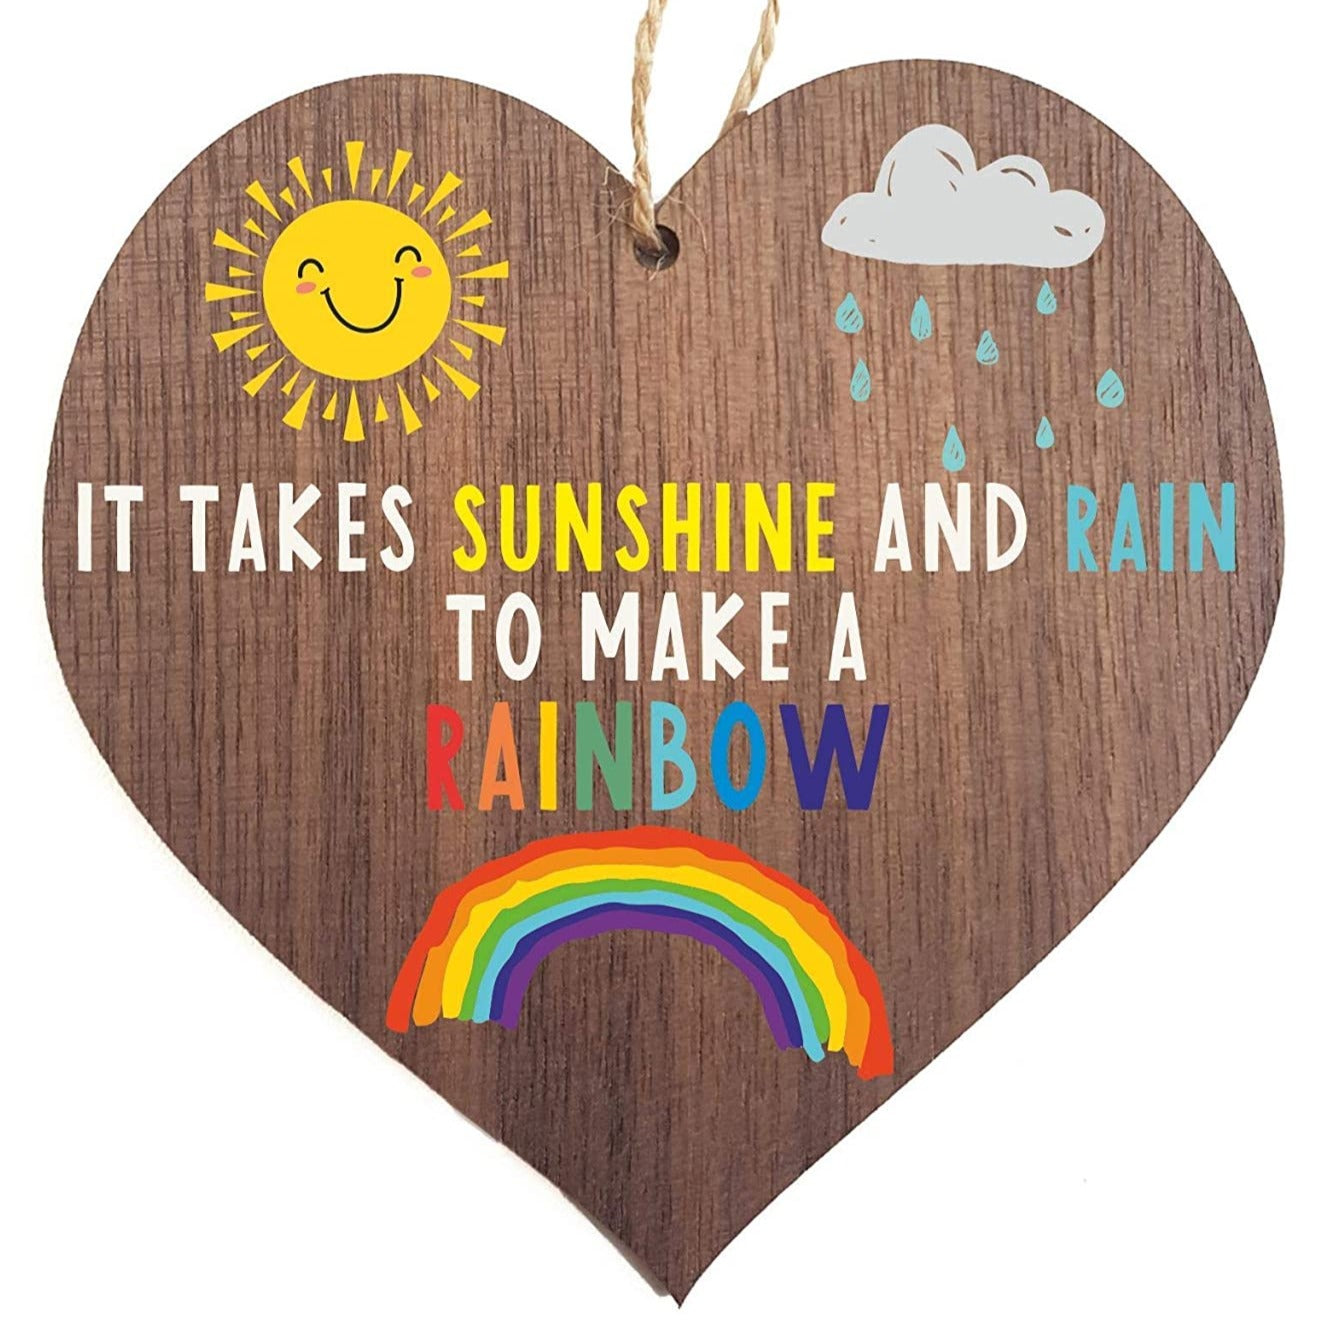 Sunshine and rain to make a rainbow